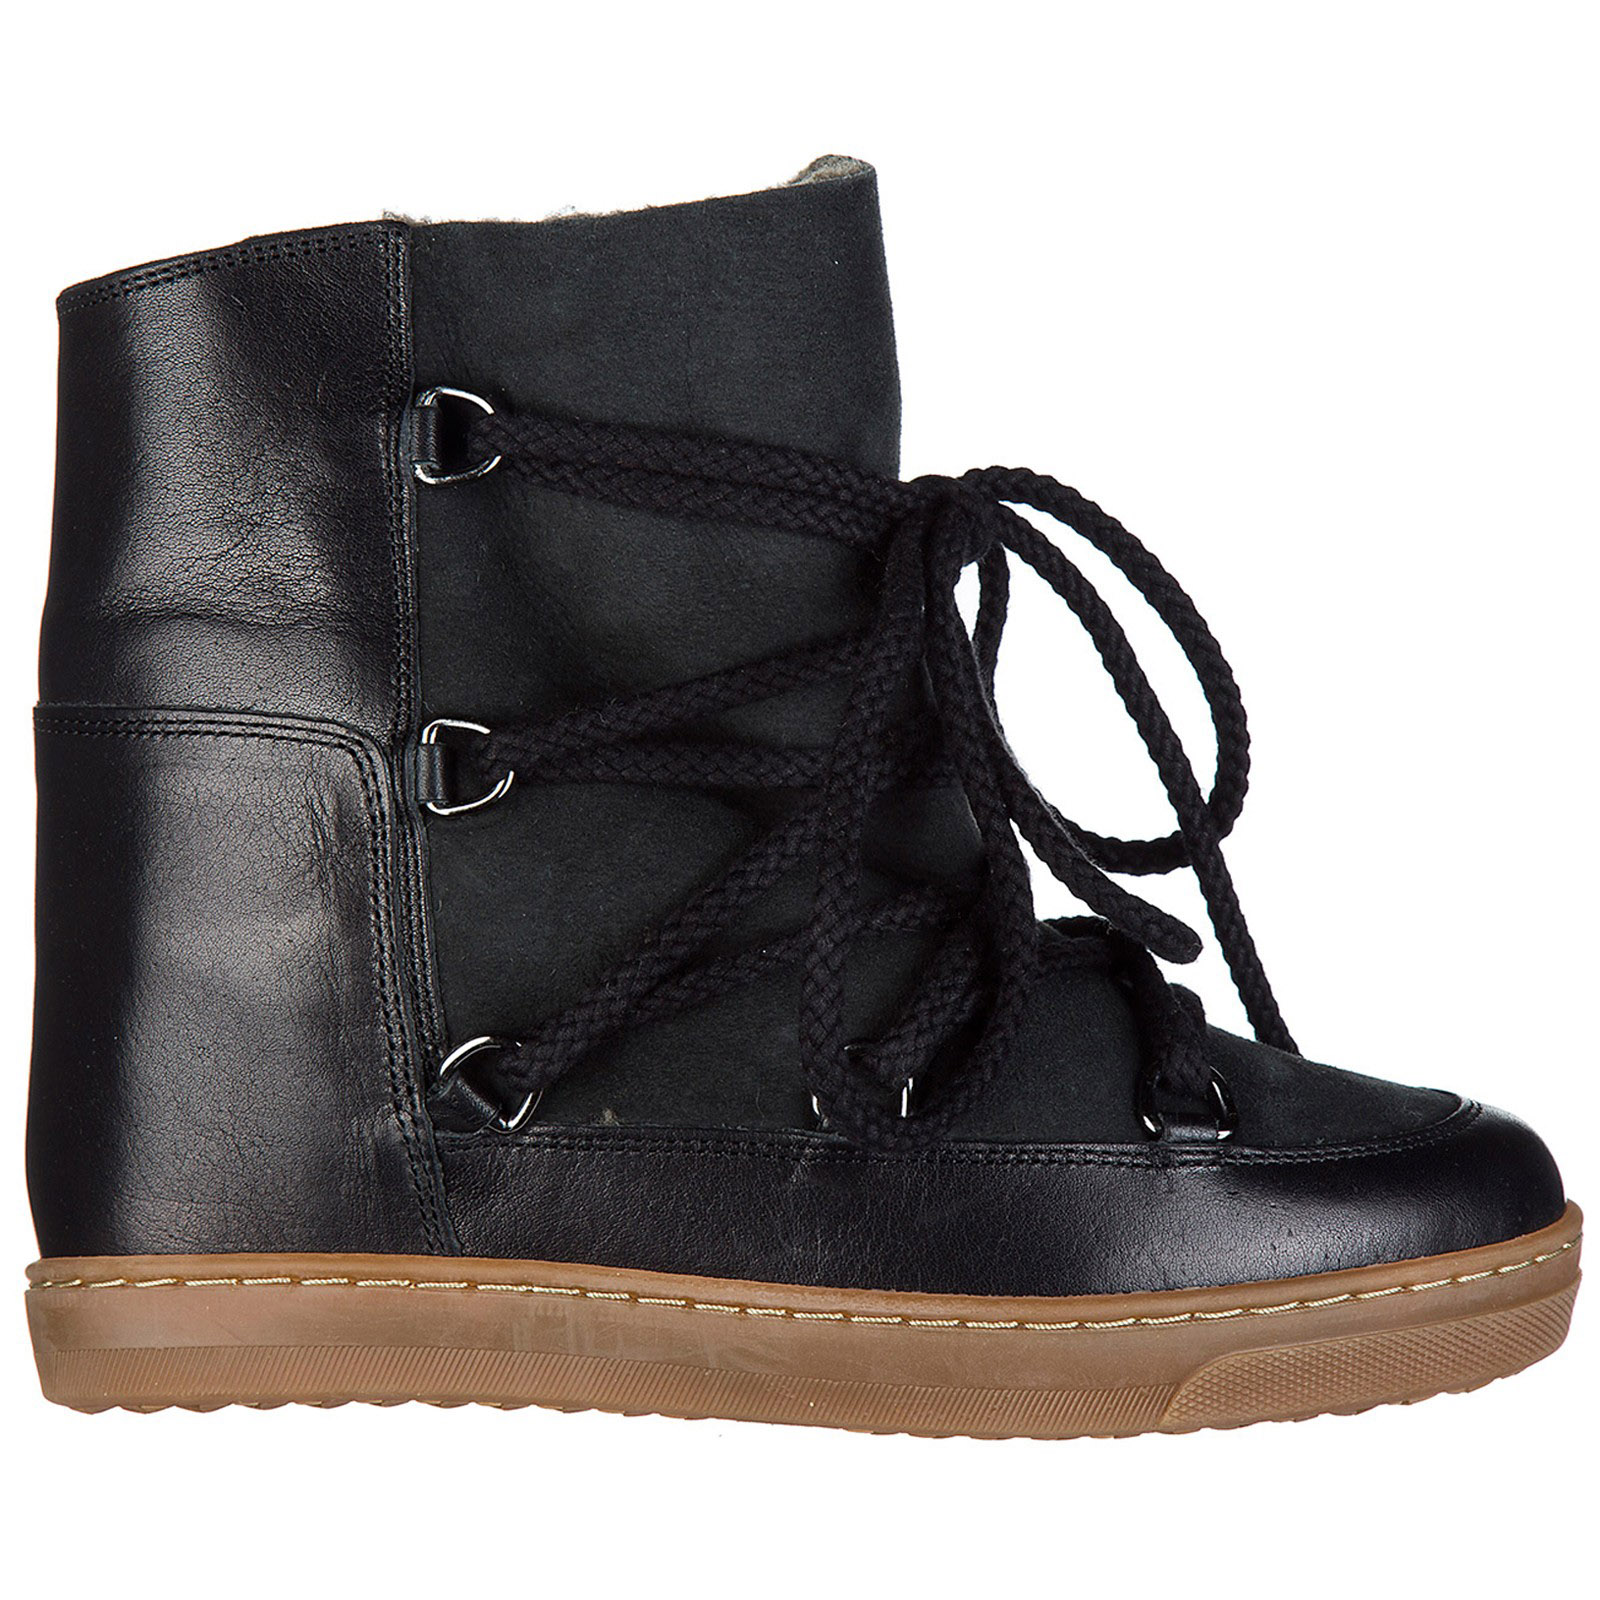 WOMEN'S LEATHER ANKLE BOOTS BOOTIES NOWLES